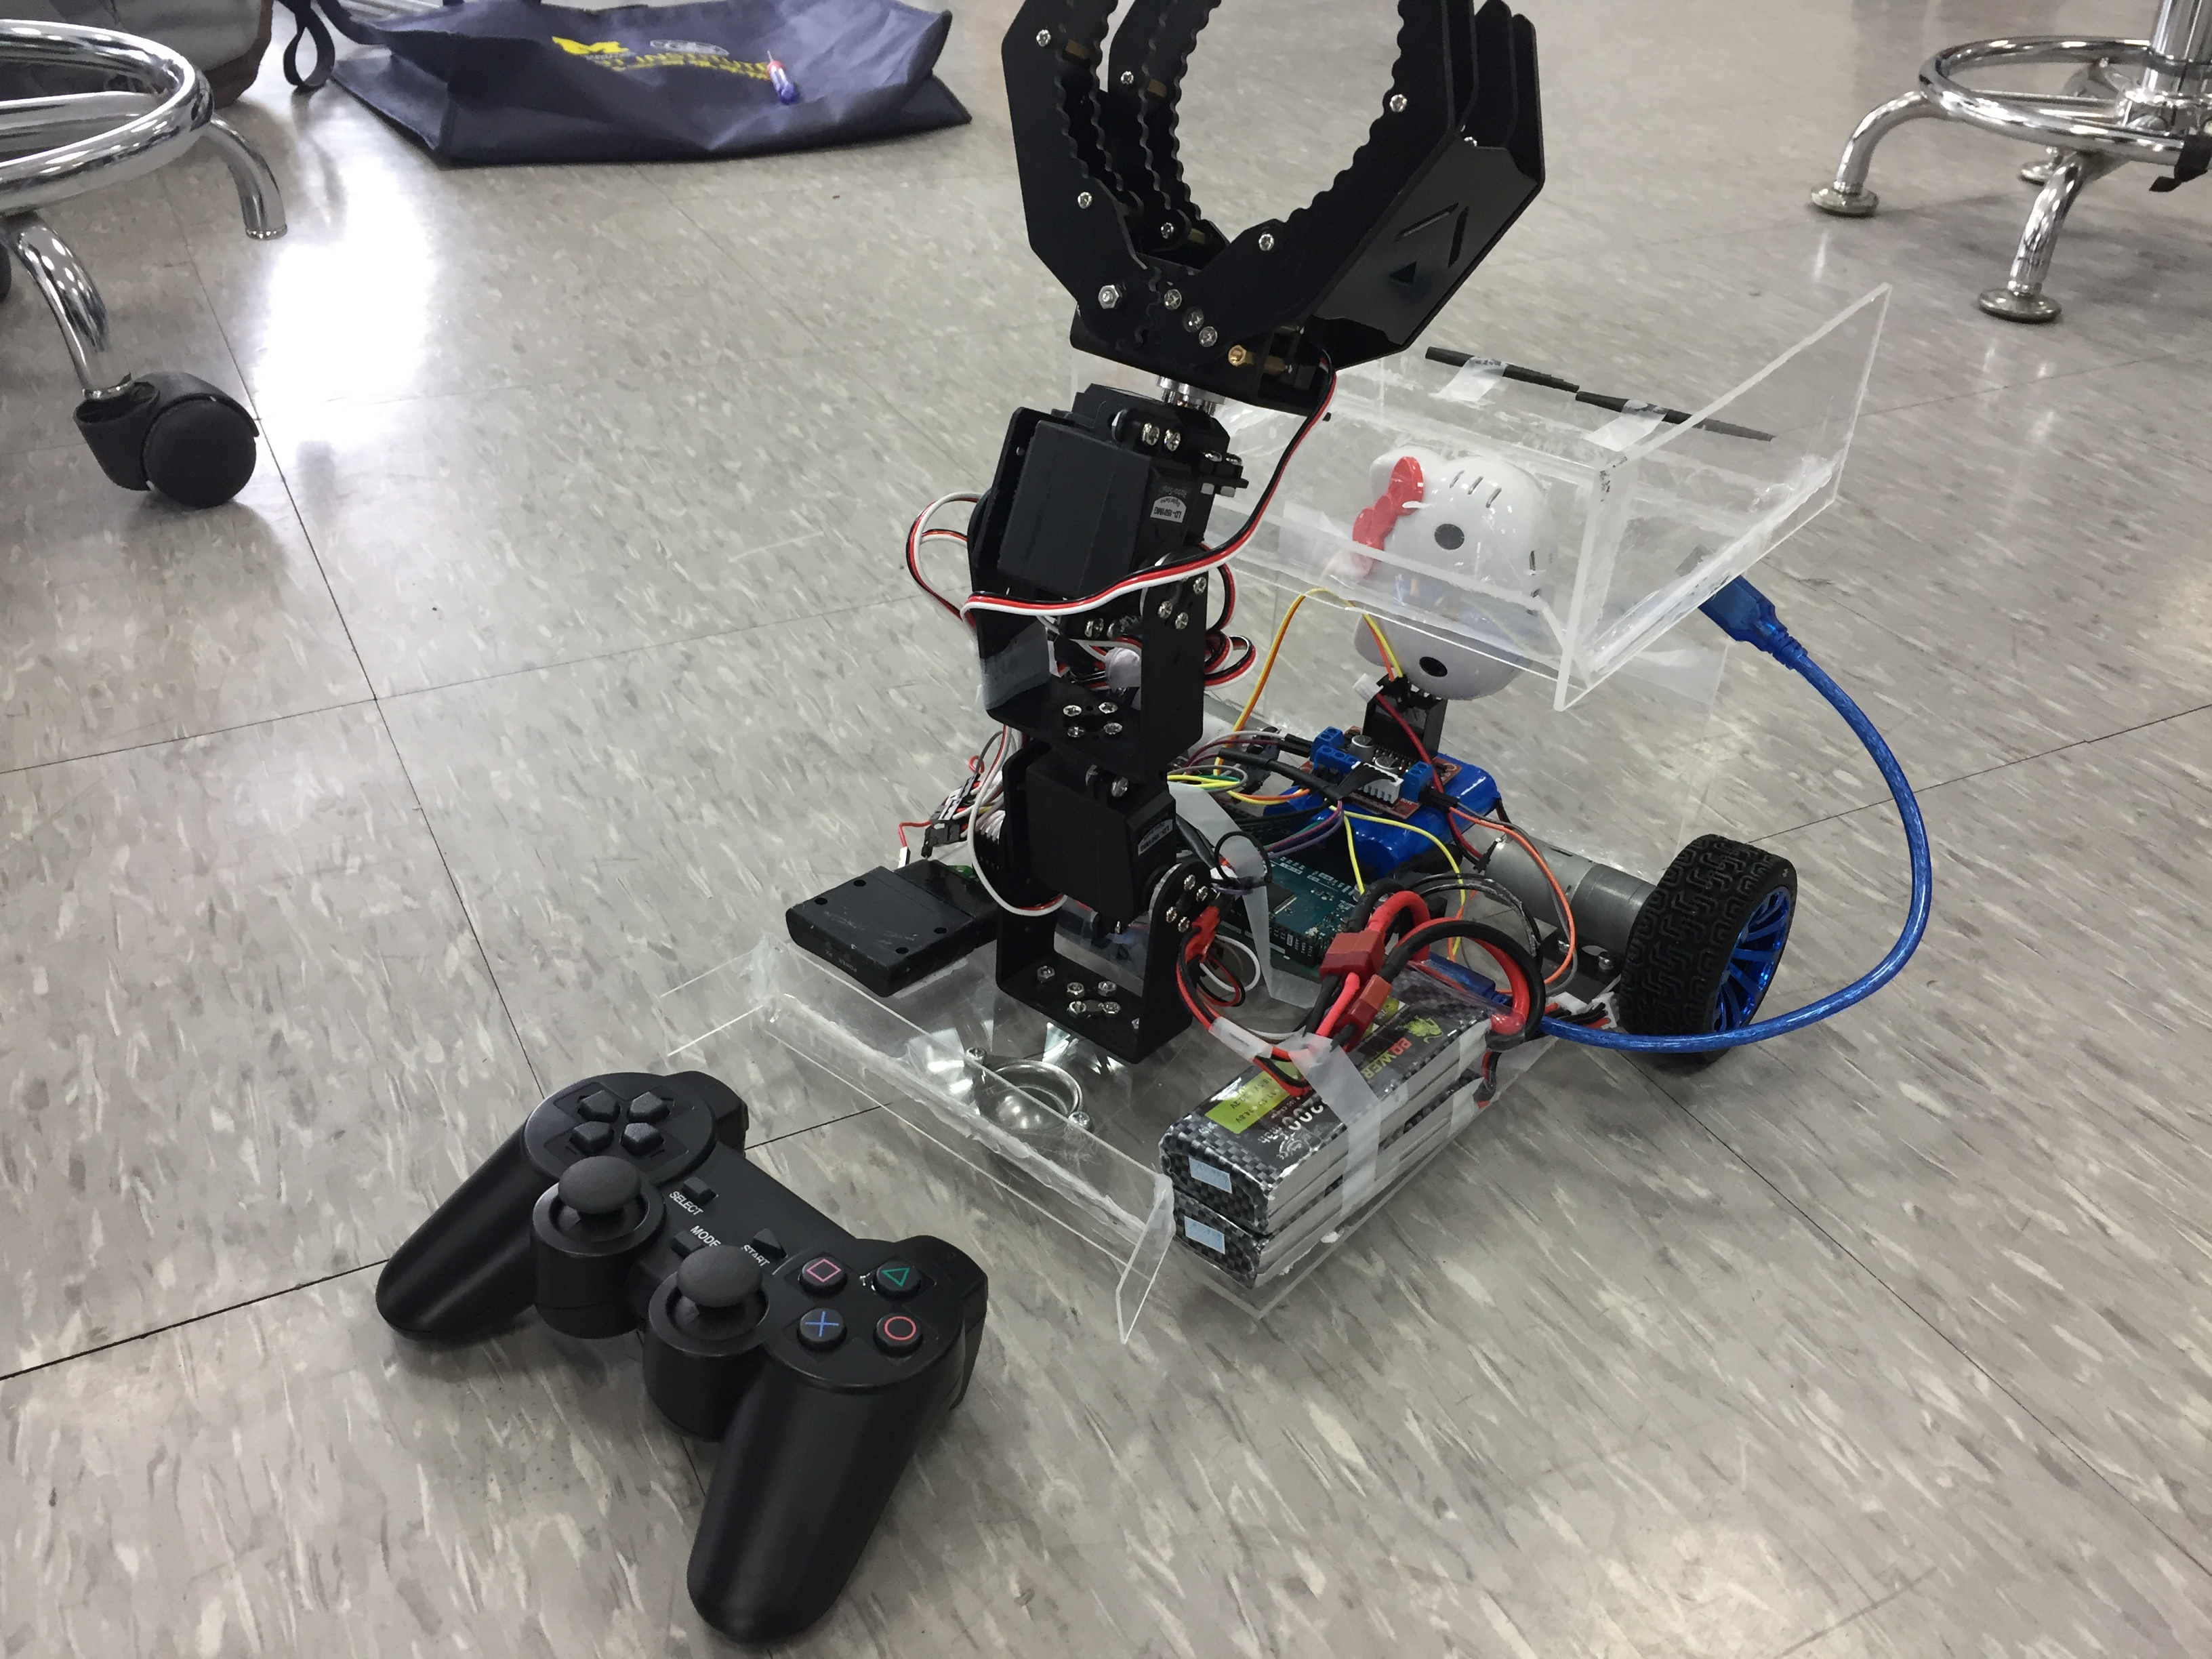 Picture of Naval Battle: a Robot Car Grabbing Balls to the Territory